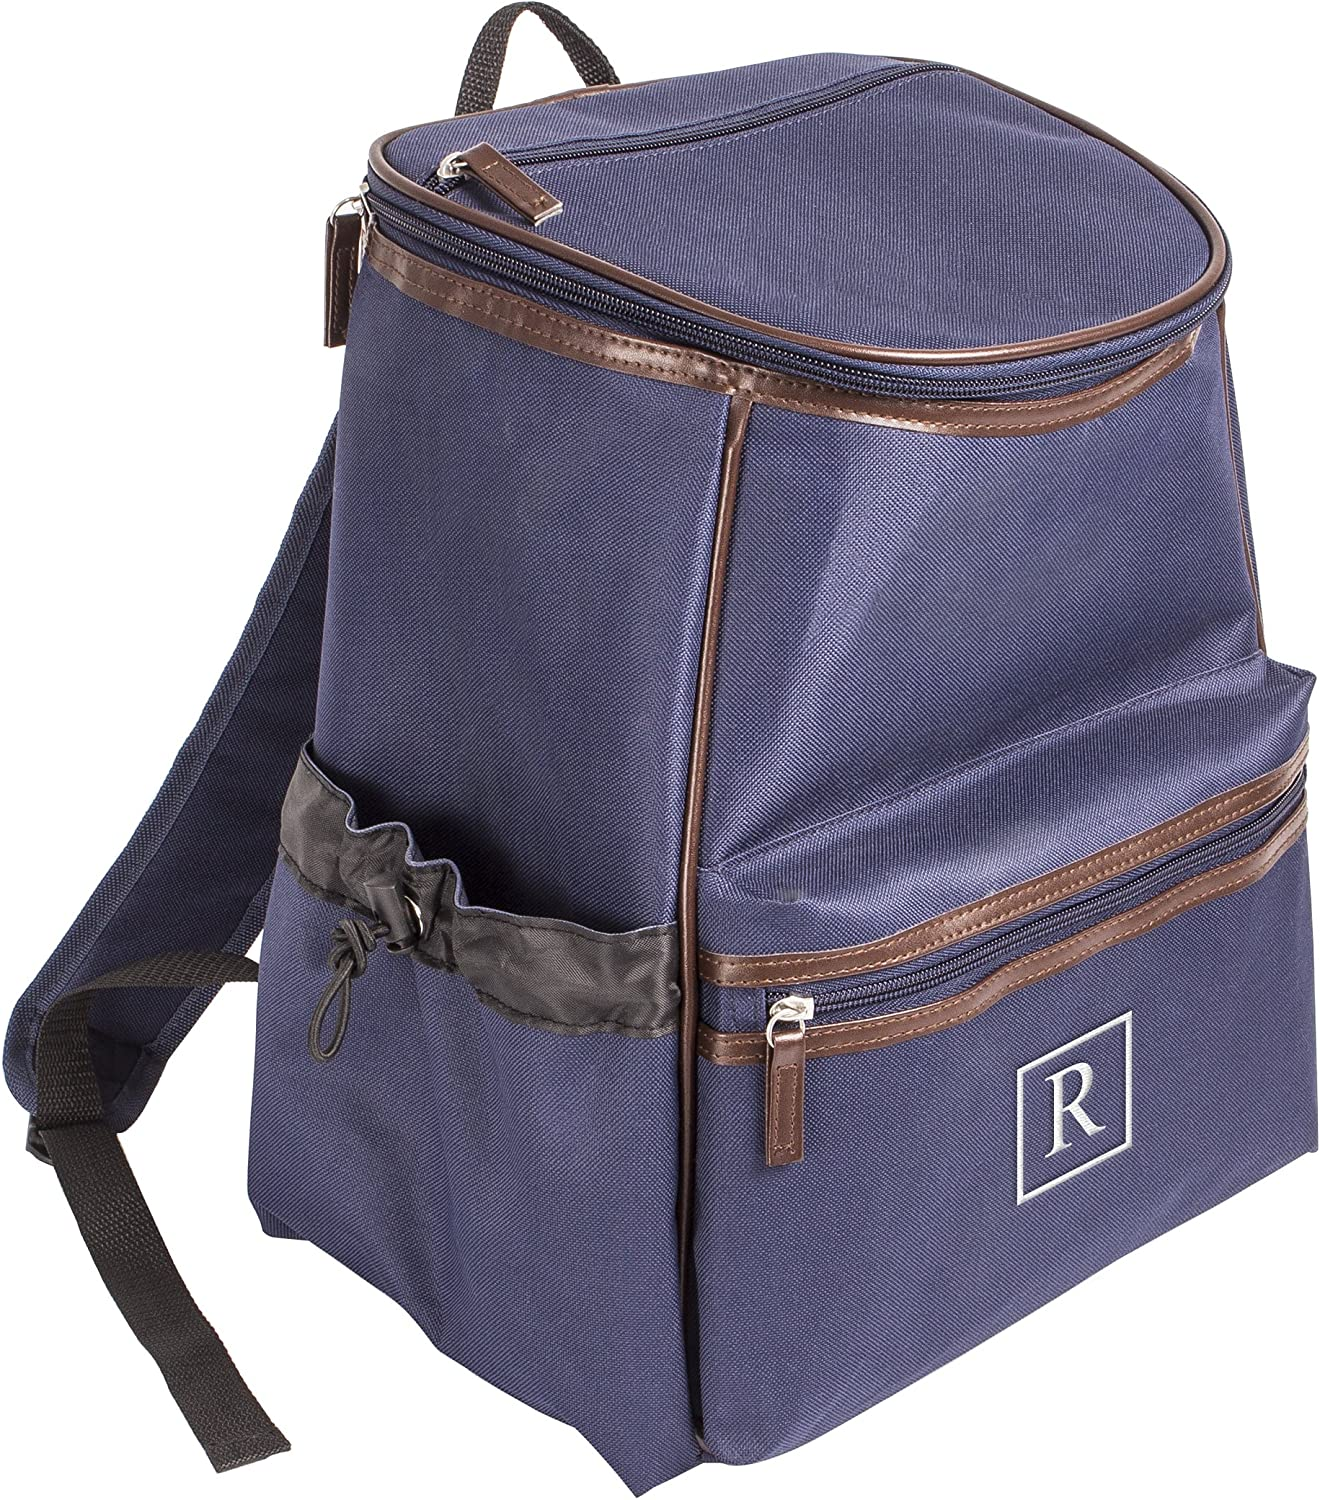 Cathy's Concepts Personalized Insulated Backpack Cooler